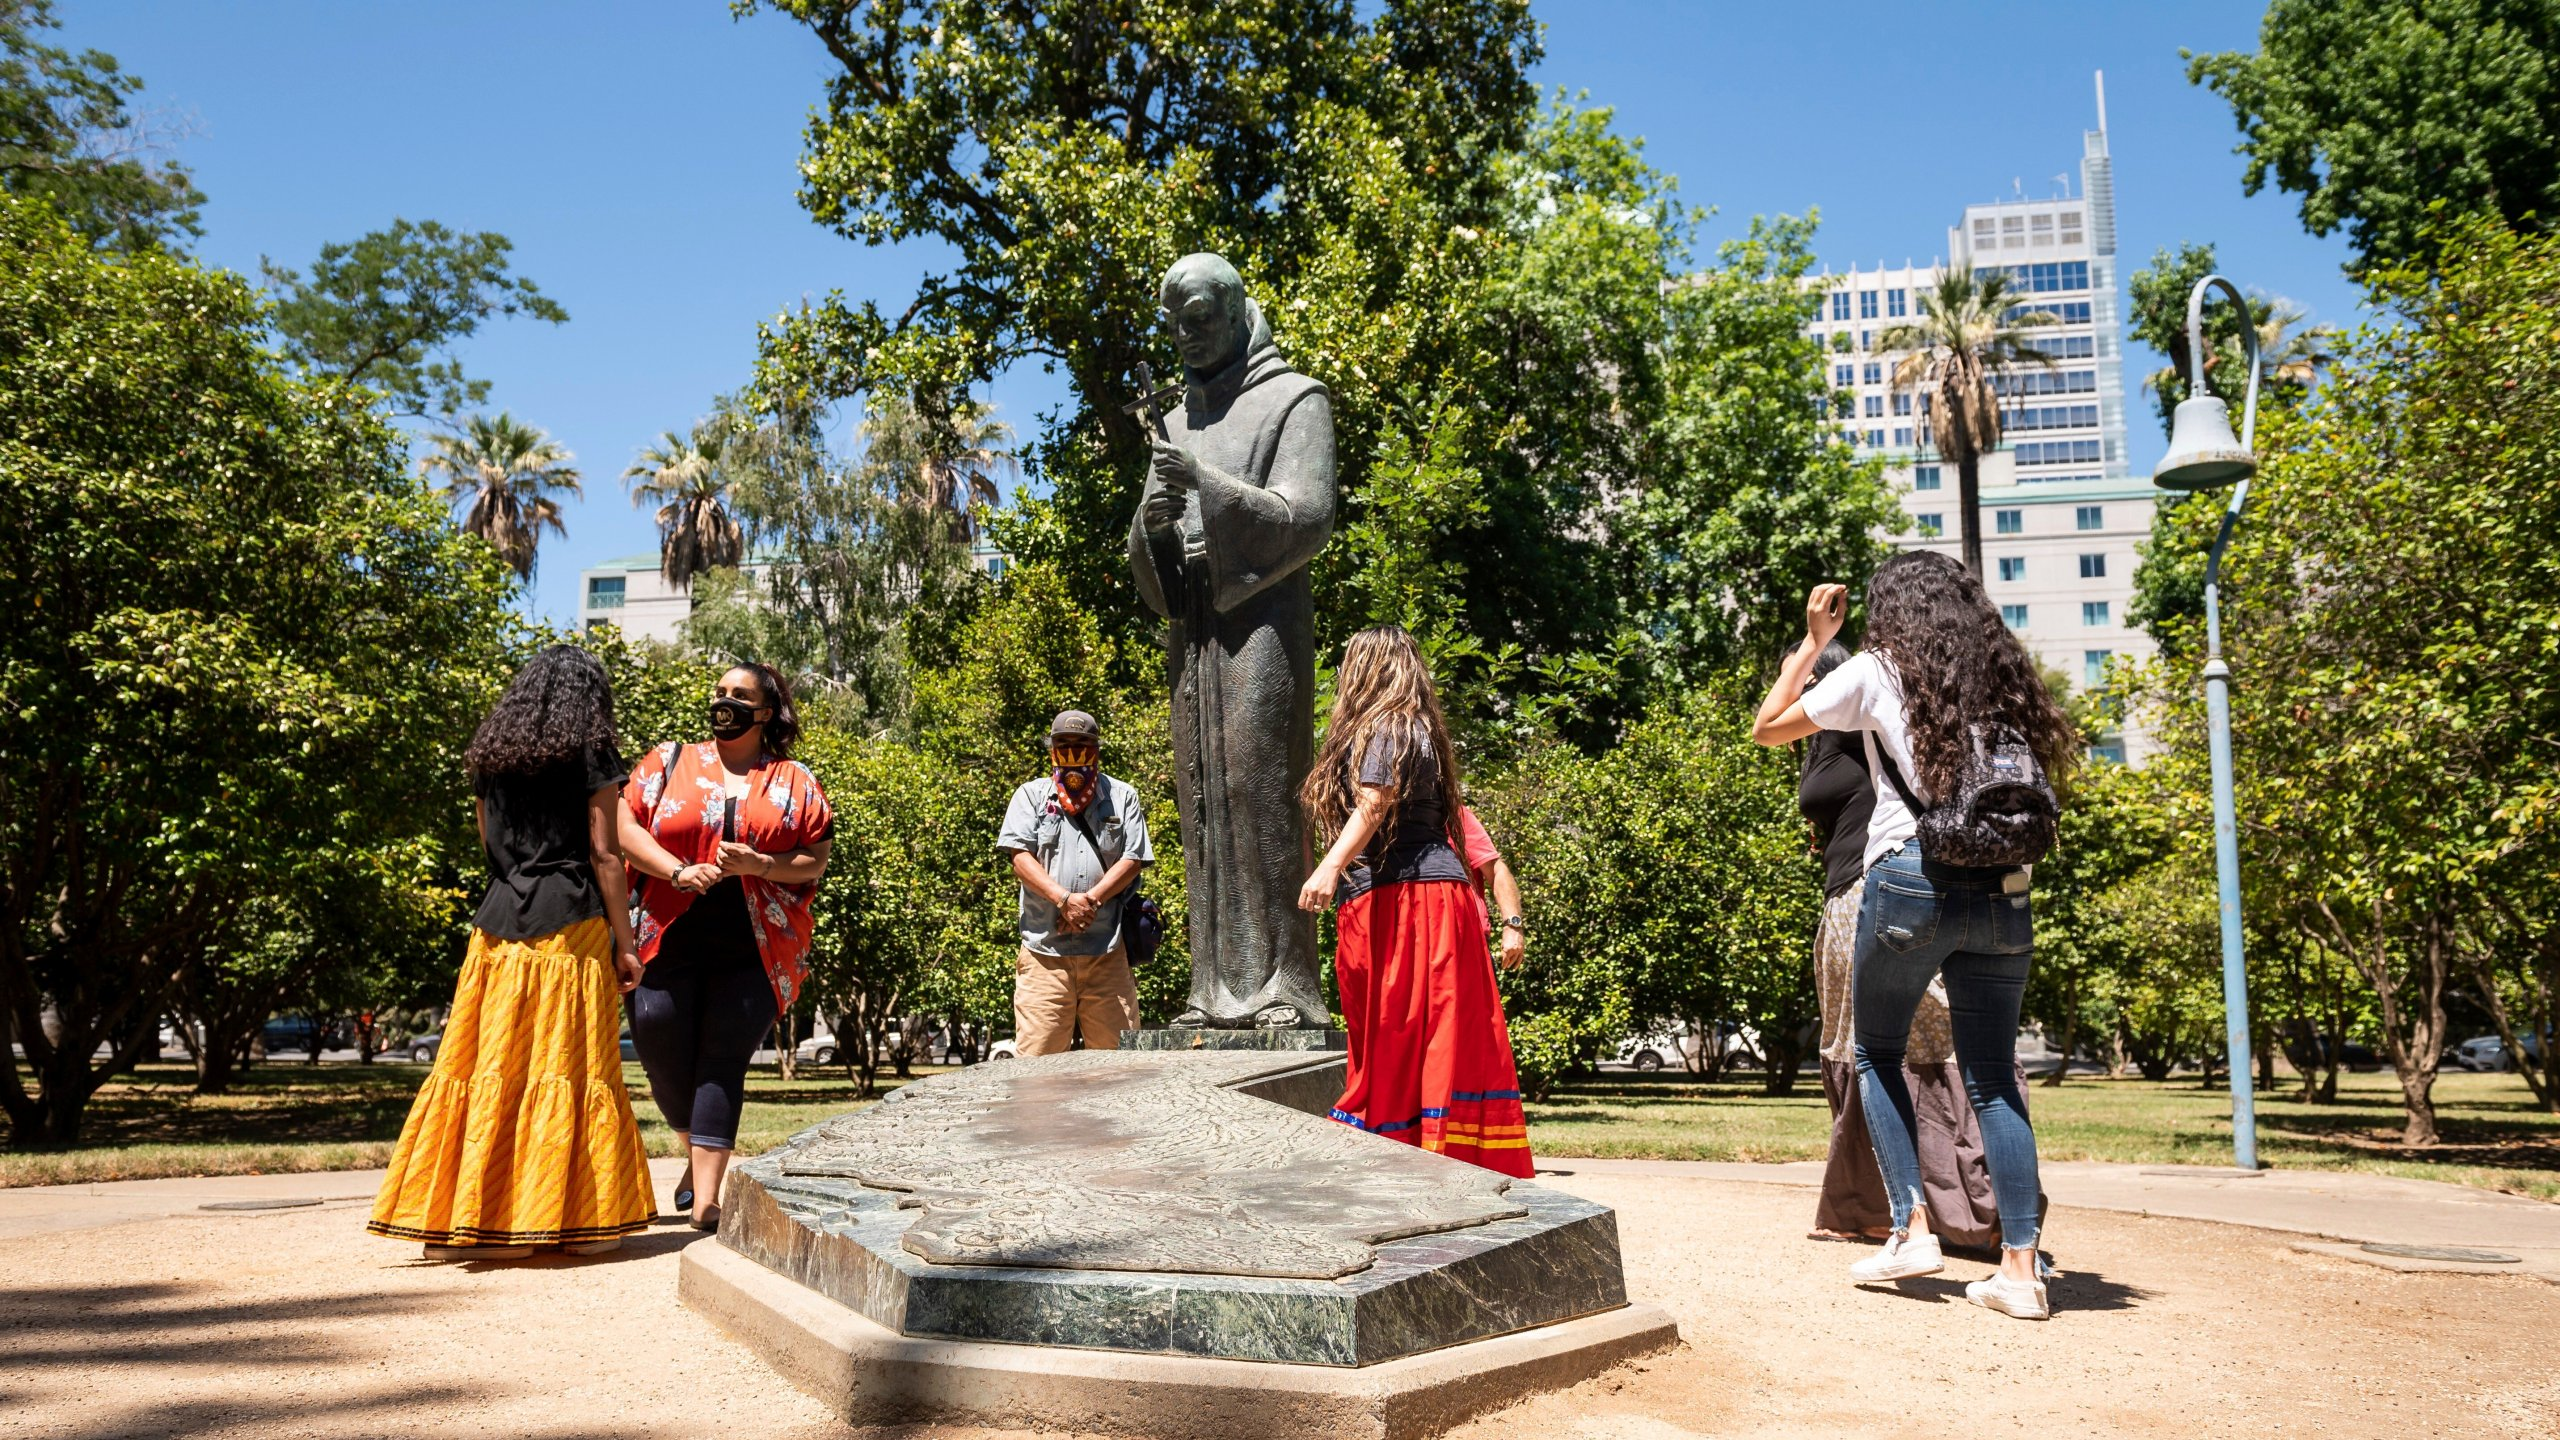 In this June 16, 2020, photo, people gather near the Father Junipero Serra statue on the Capitol Park grounds in Sacramento, Calif. (Xavier Mascarenas/The Sacramento Bee via Associated Press)